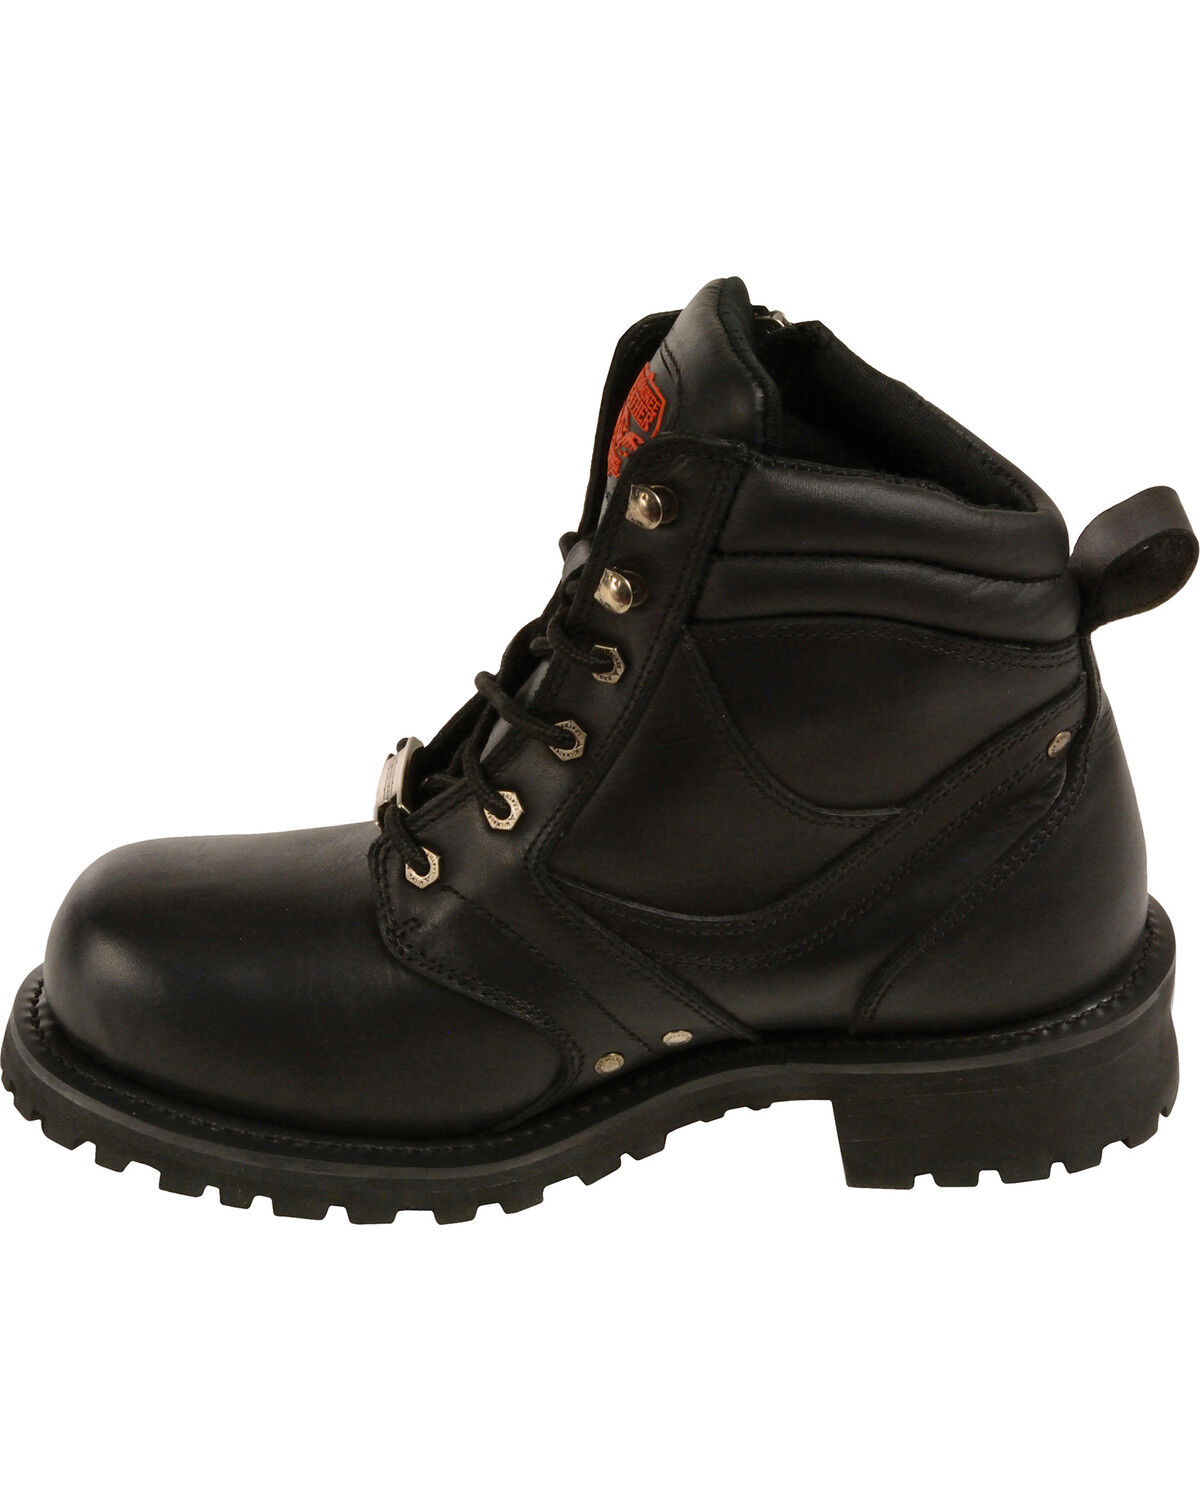 Milwaukee Leather Mens 6 Side Zipper Boot Black, Size 10